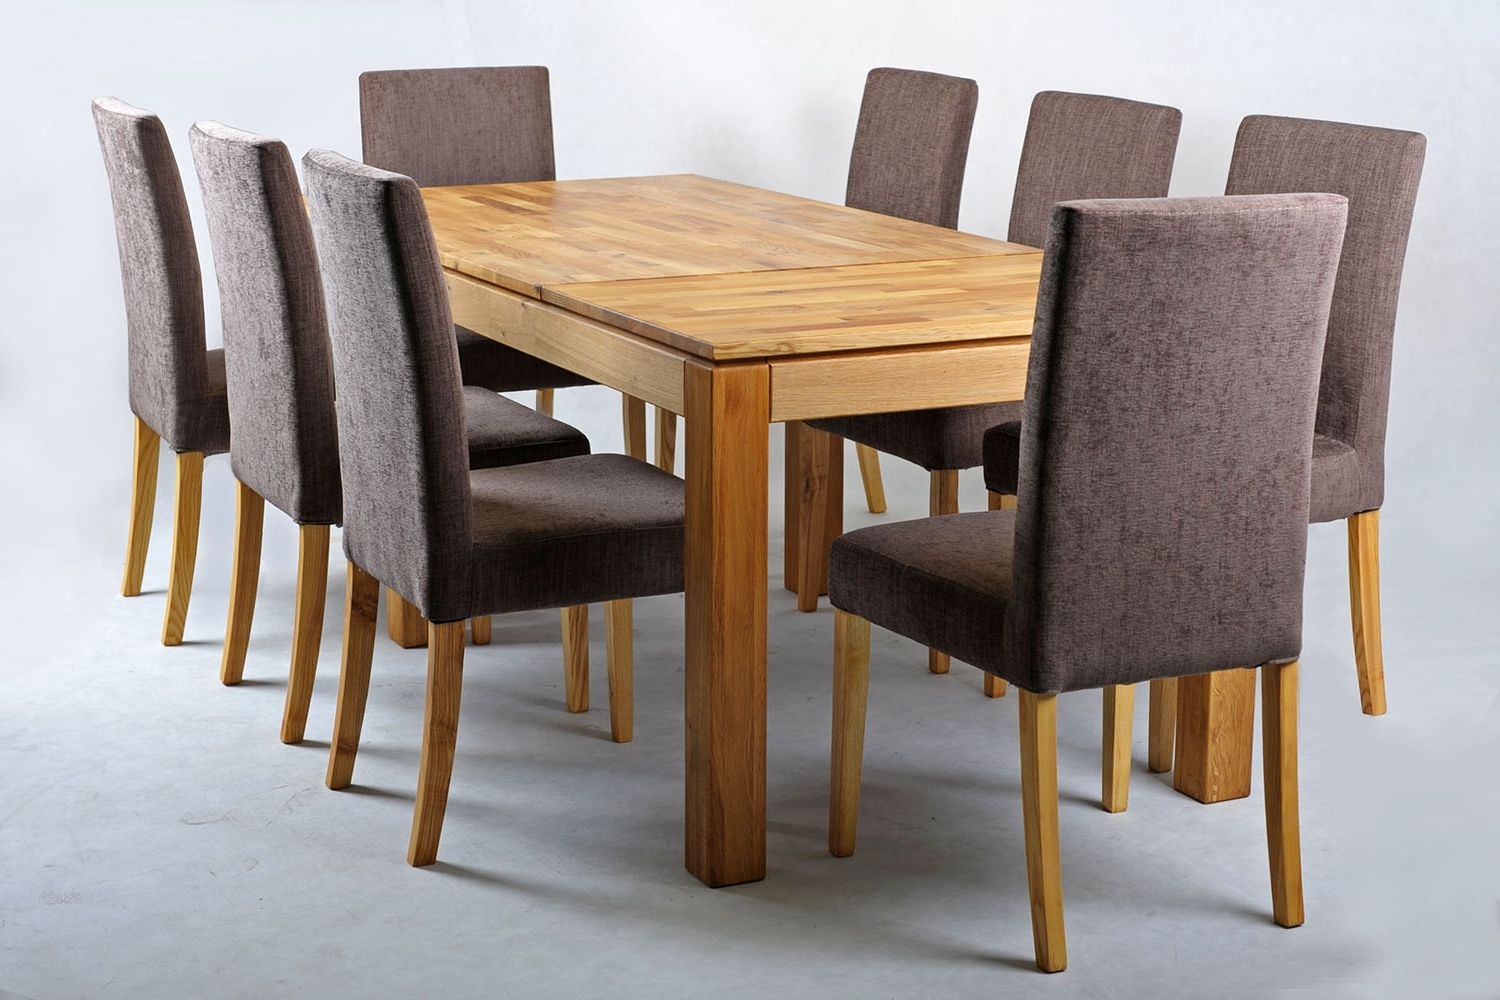 Extendable Dining Tables 6 Chairs With Regard To Famous Solid Oak Extending Dining Table And Chairs Set, Dining Table And (Gallery 17 of 25)